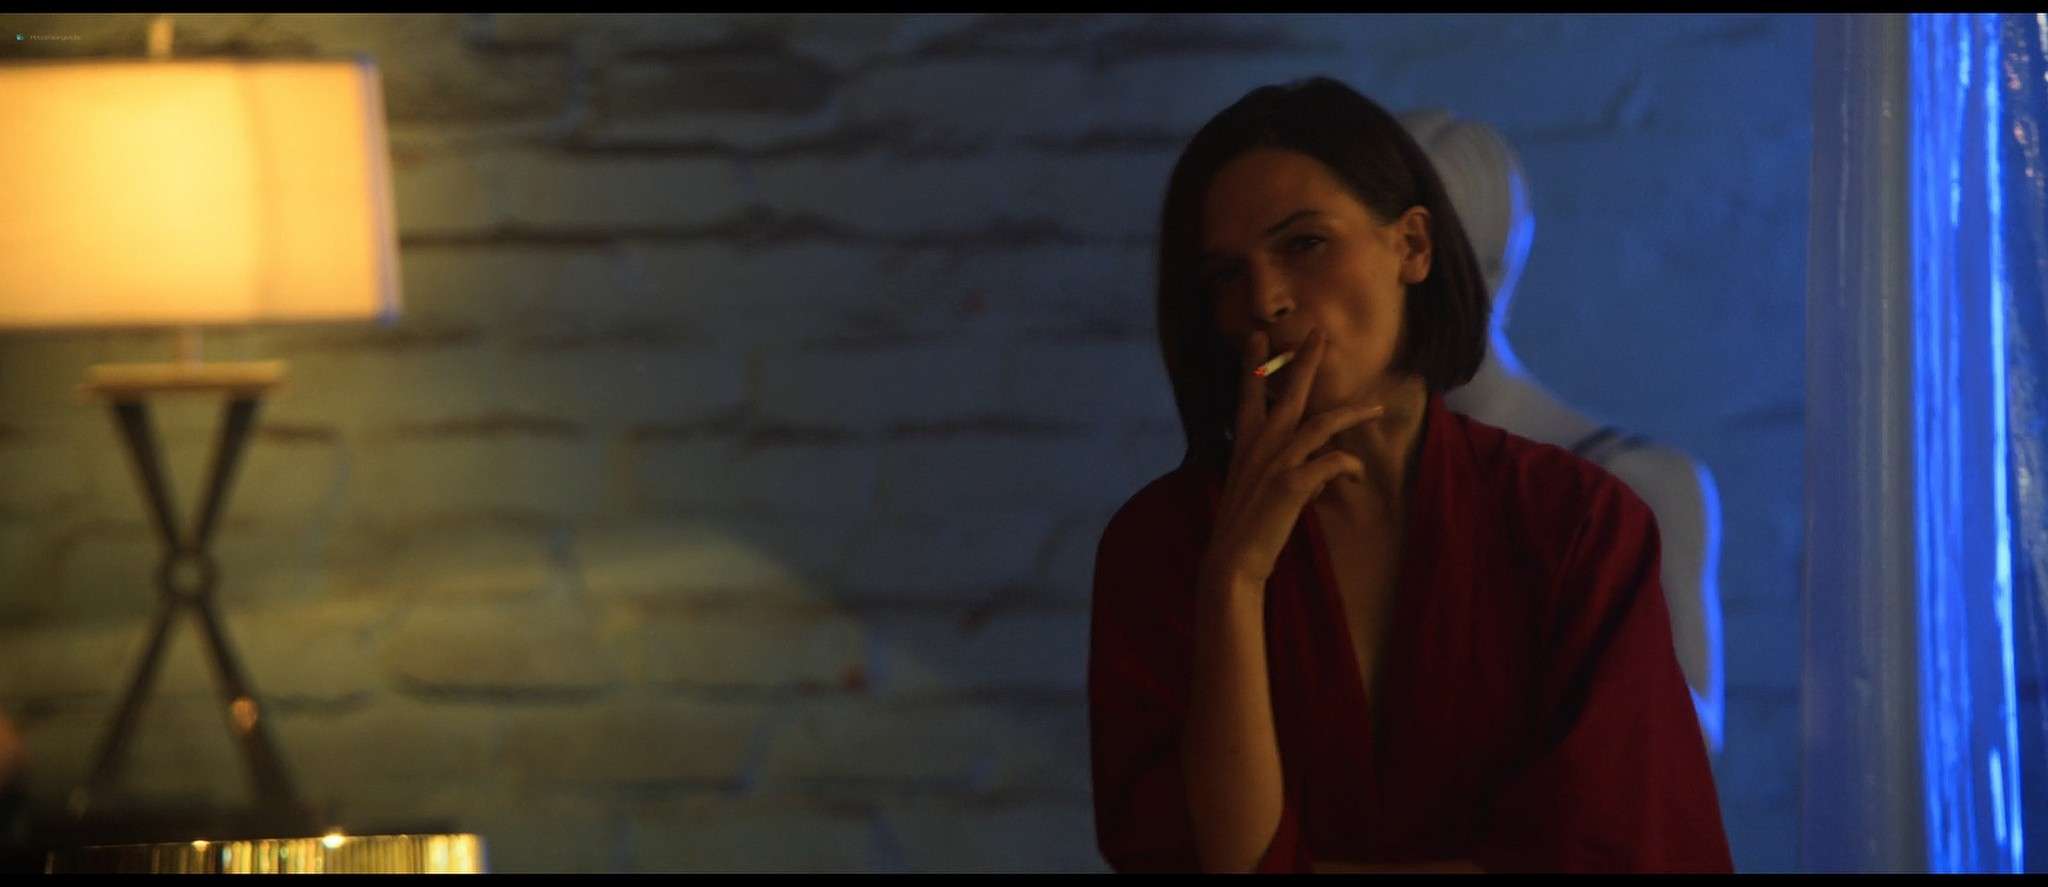 Anna Brewster nude sex - The Last Days of American Crime (2020) HD 1080p Web (12)